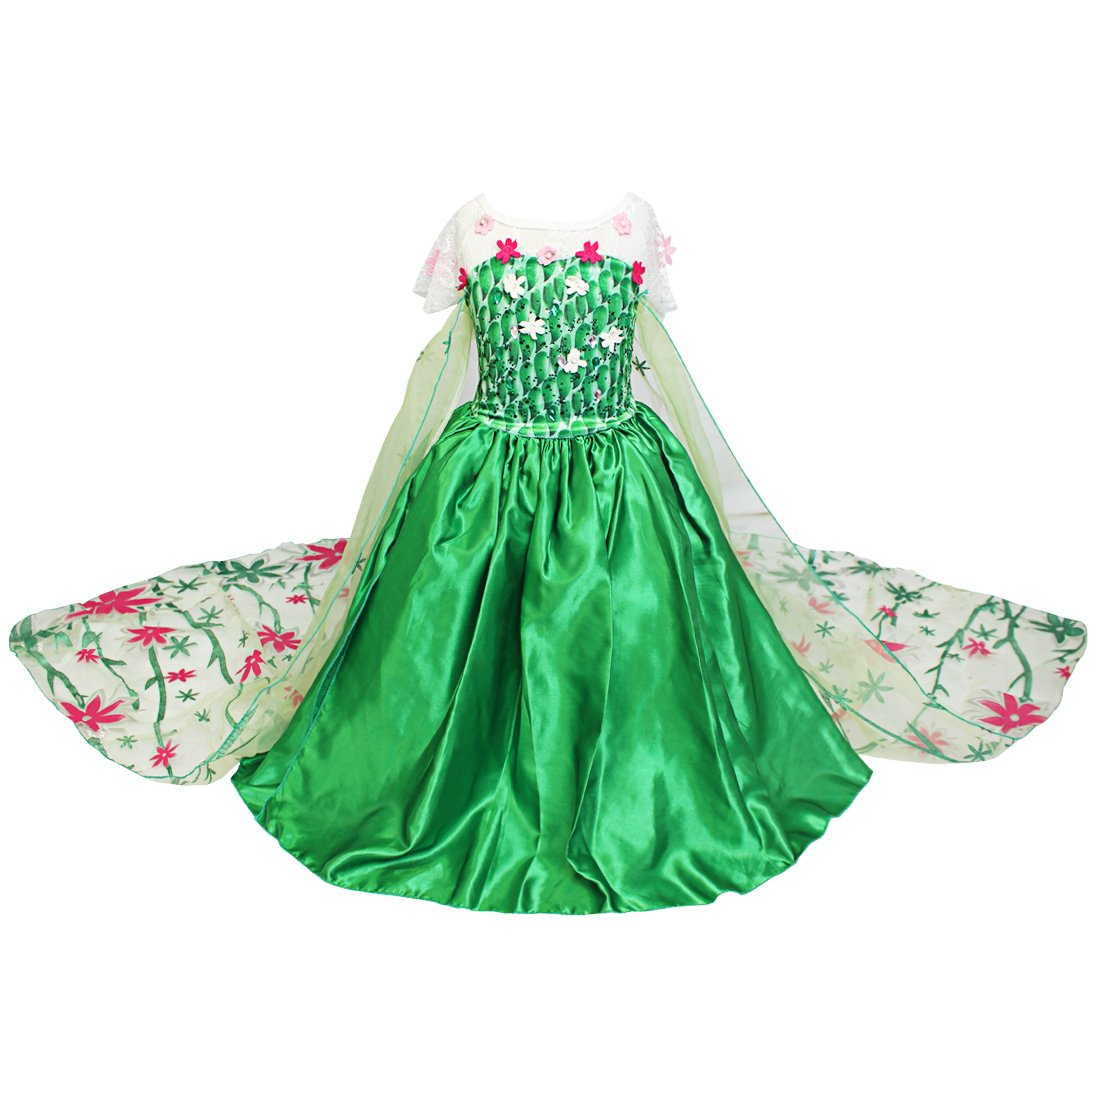 Robe de soiree verte amazon